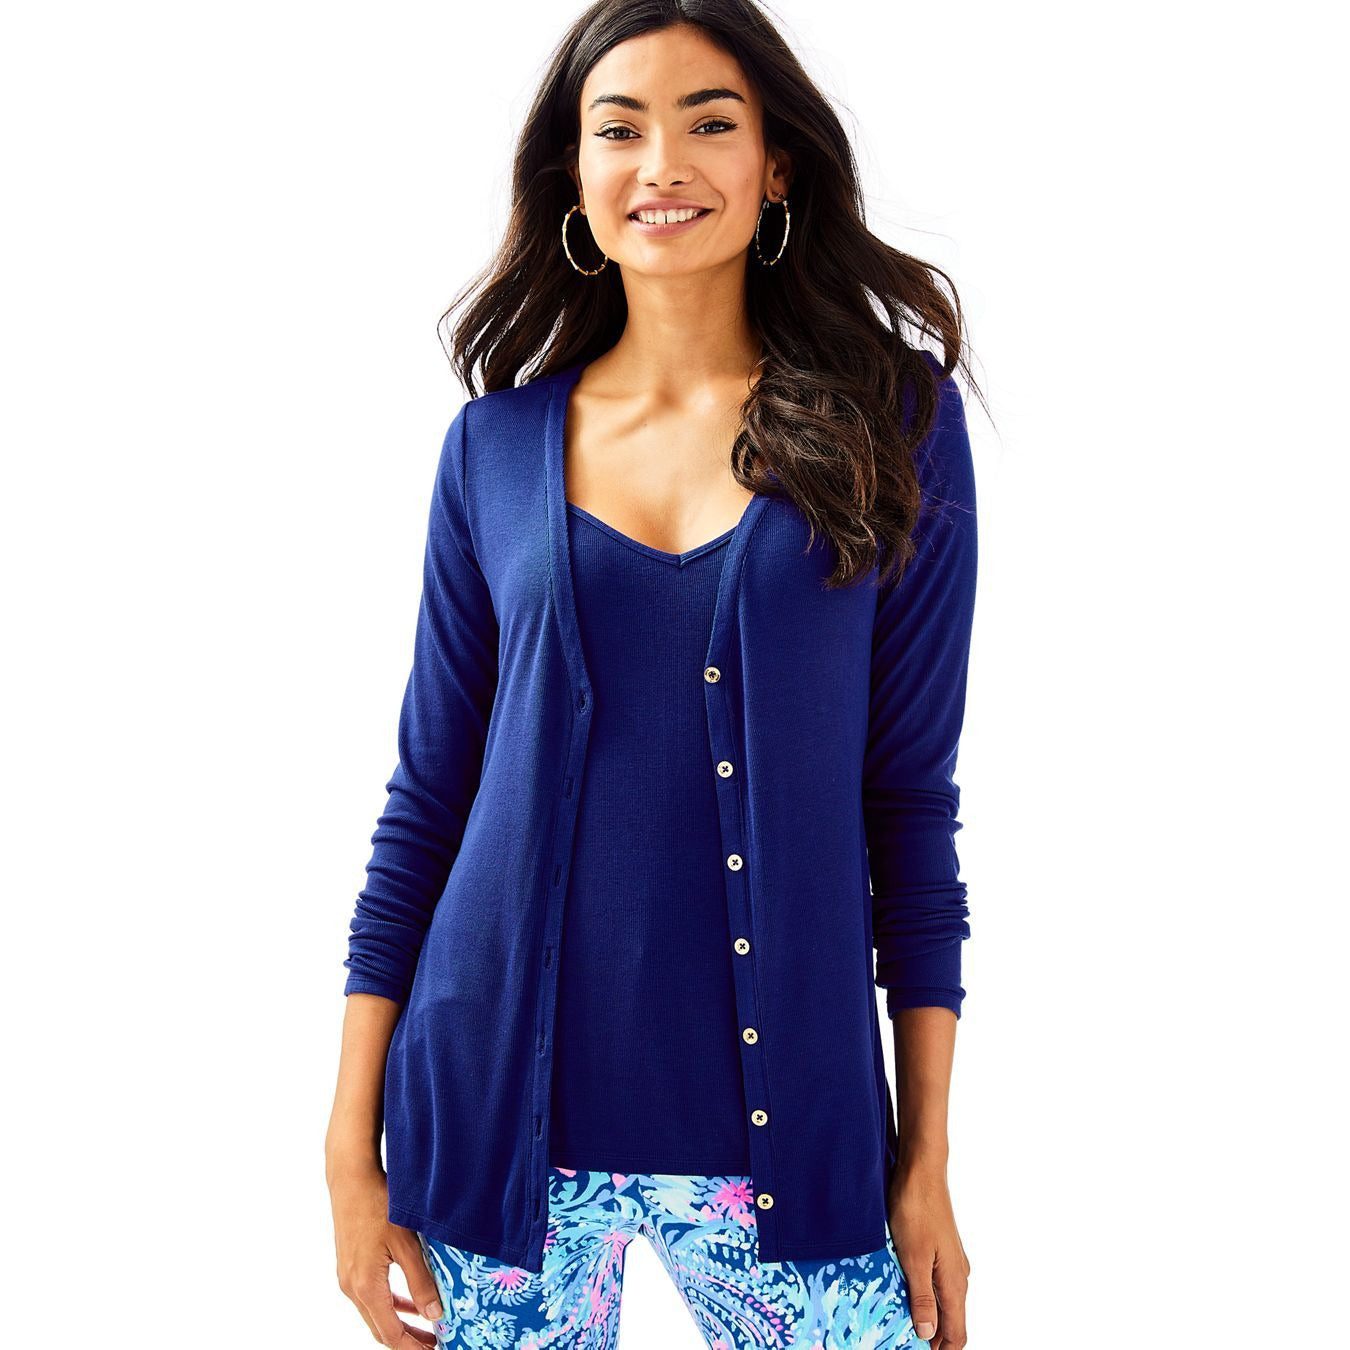 Lilly Pulitzer Lorne Set High Tide Navy